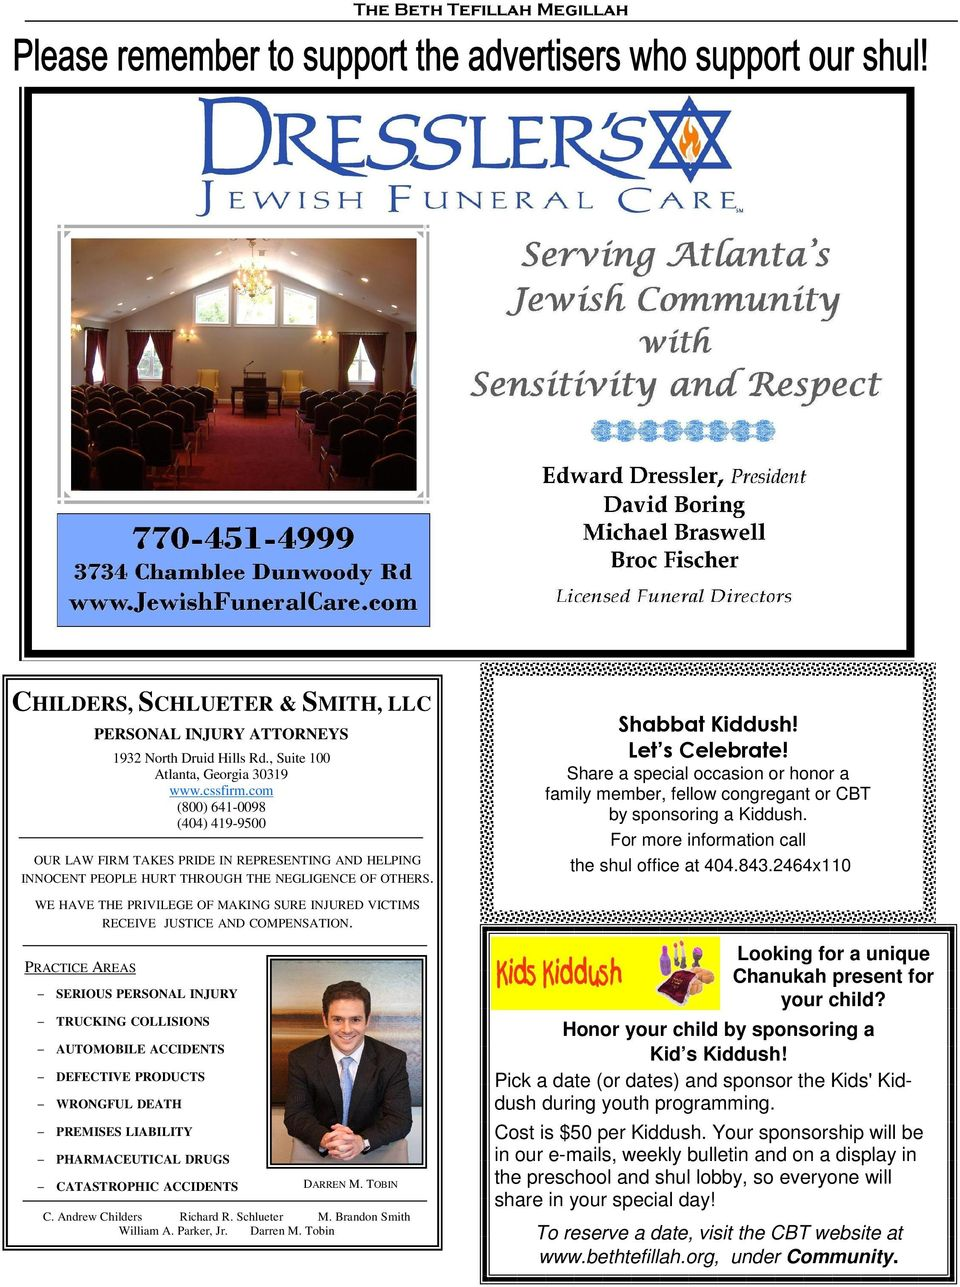 Share a special occasion or honor a family member, fellow congregant or CBT by sponsoring a Kiddush. For more information call the shul office at 404.843.